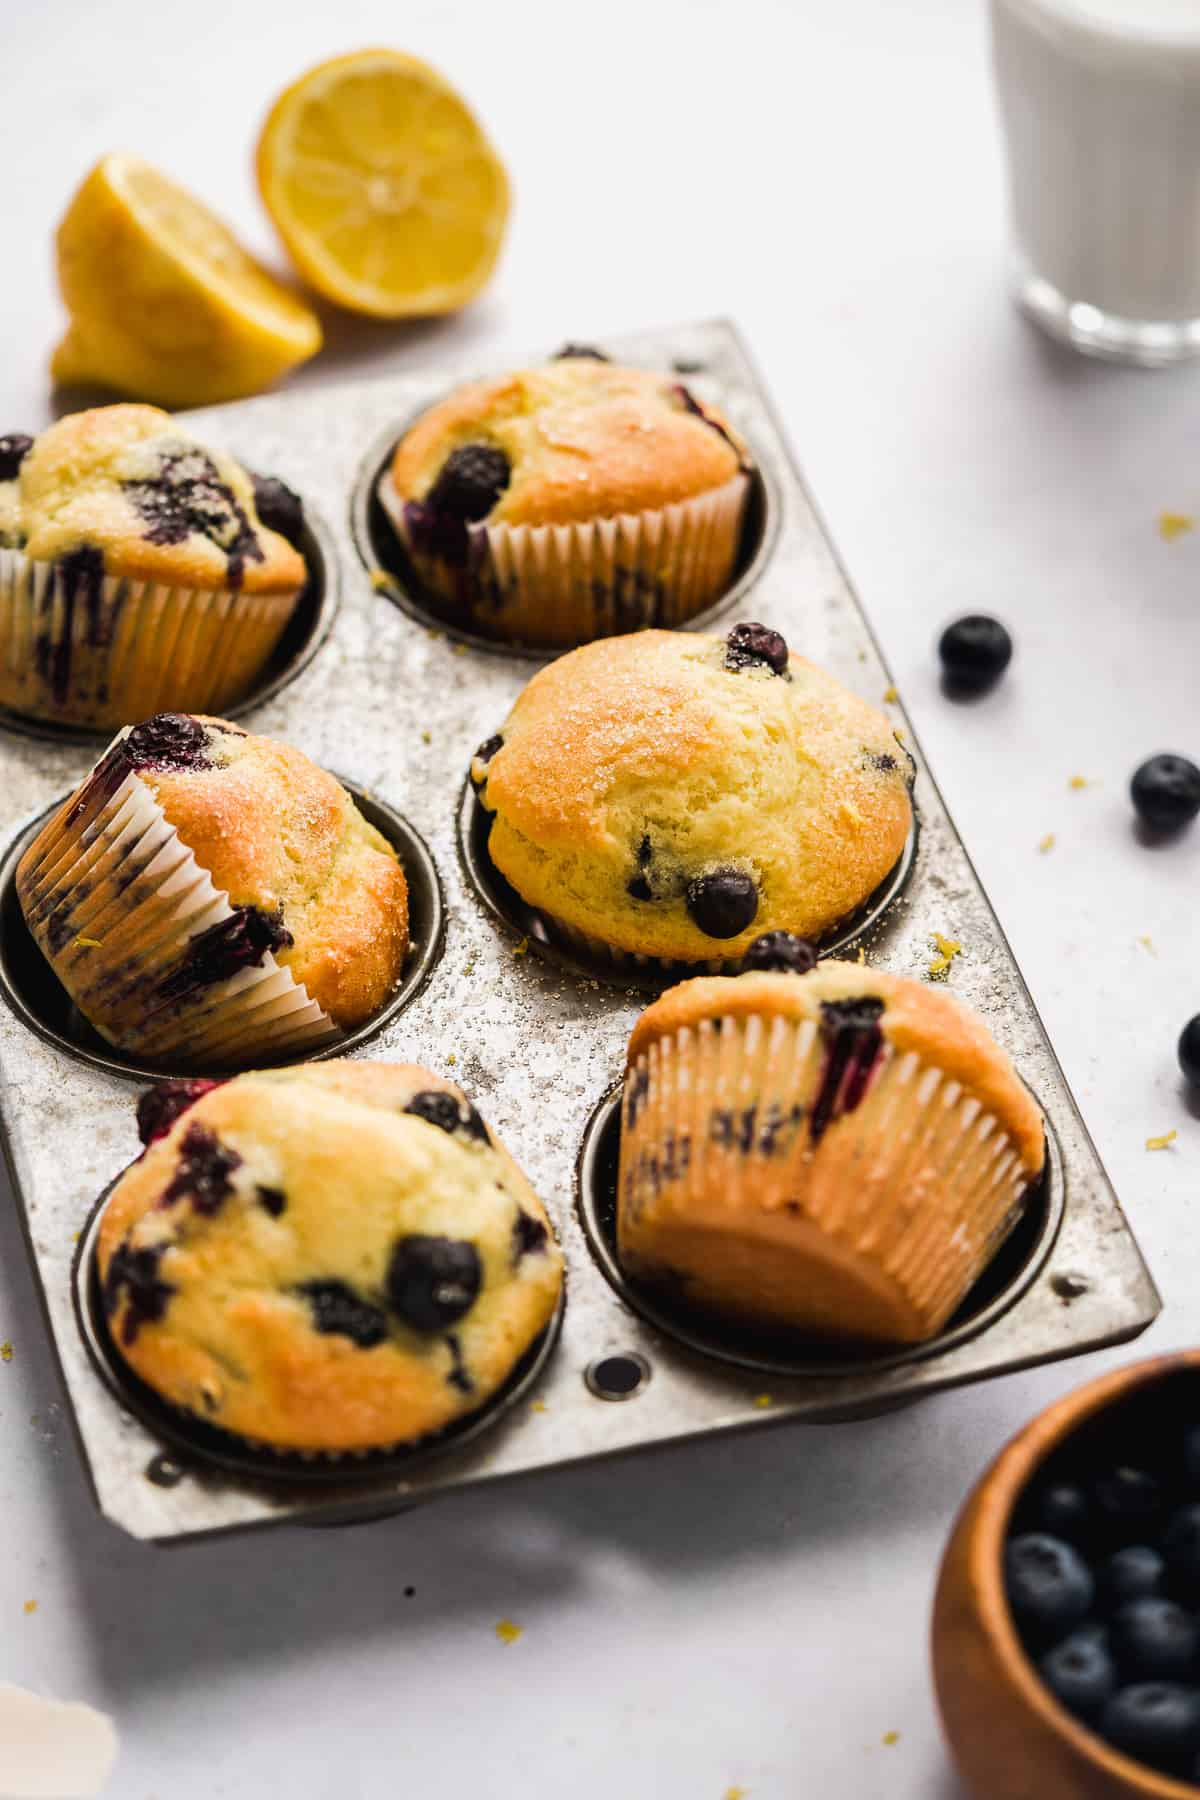 Blueberry muffins in a muffin tin with a few tipped sideways and blueberries on the surface.